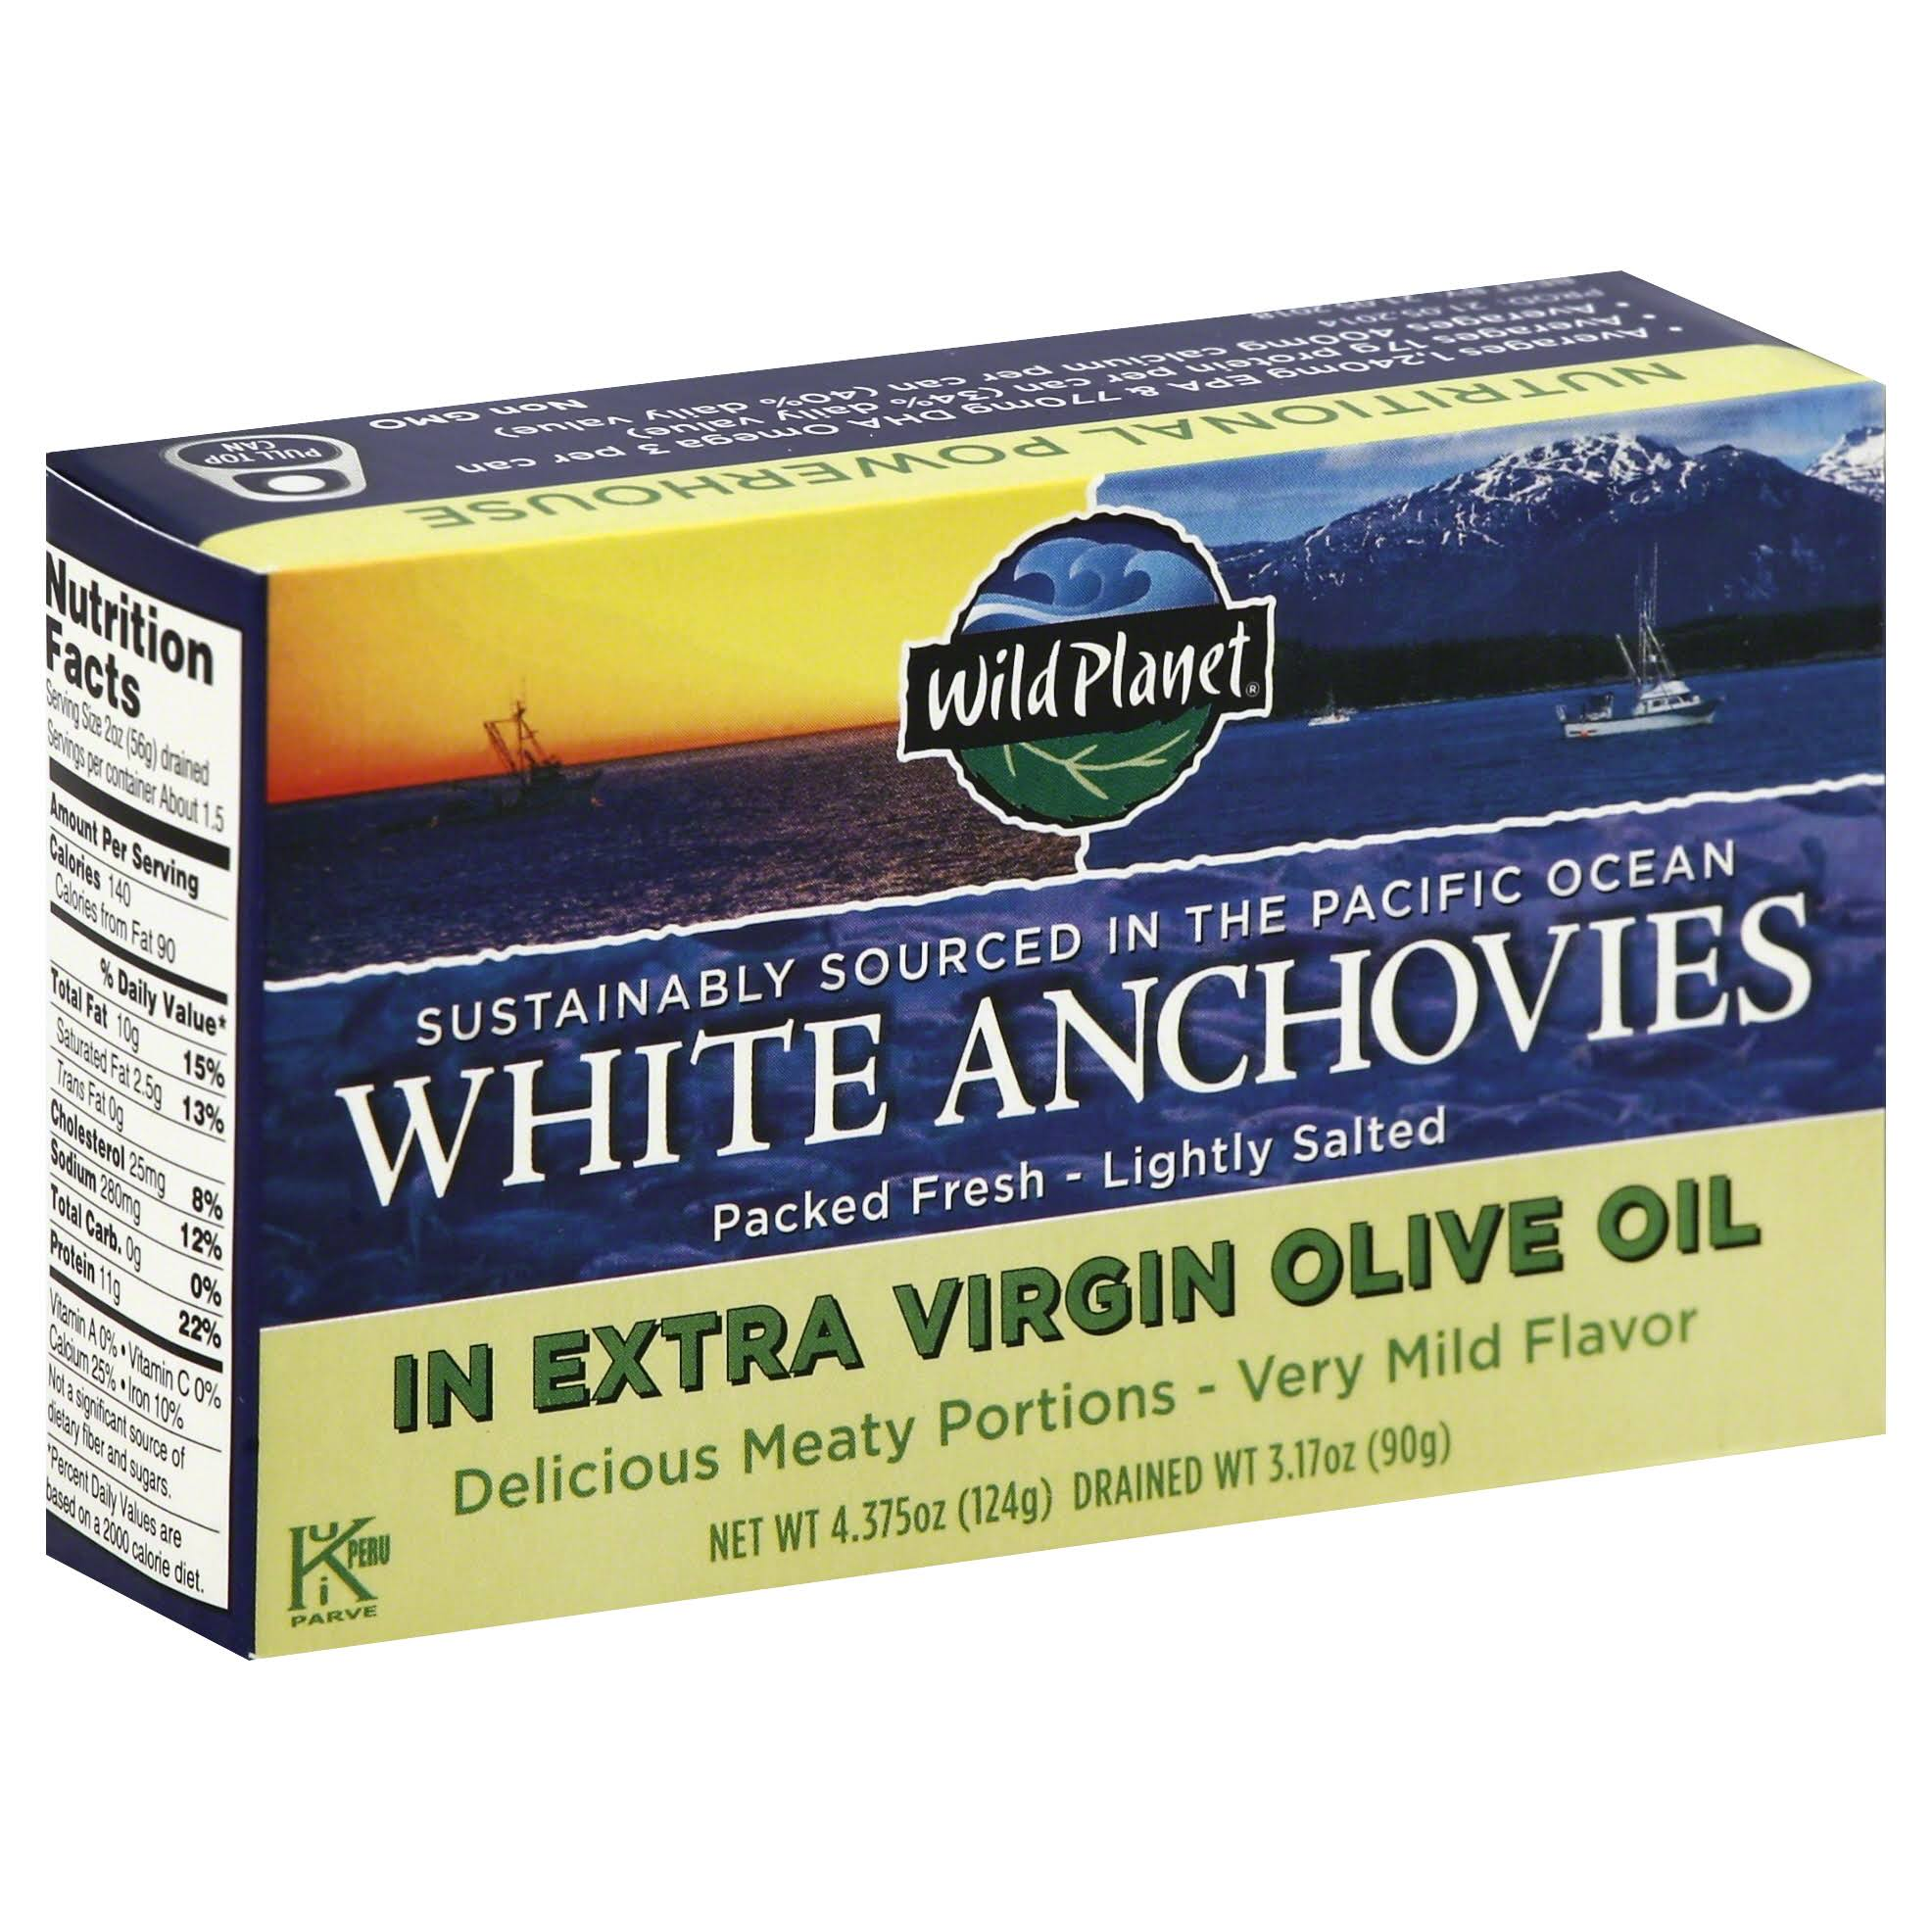 Wild Planet White Anchovies in Extra Virgin Olive Oil